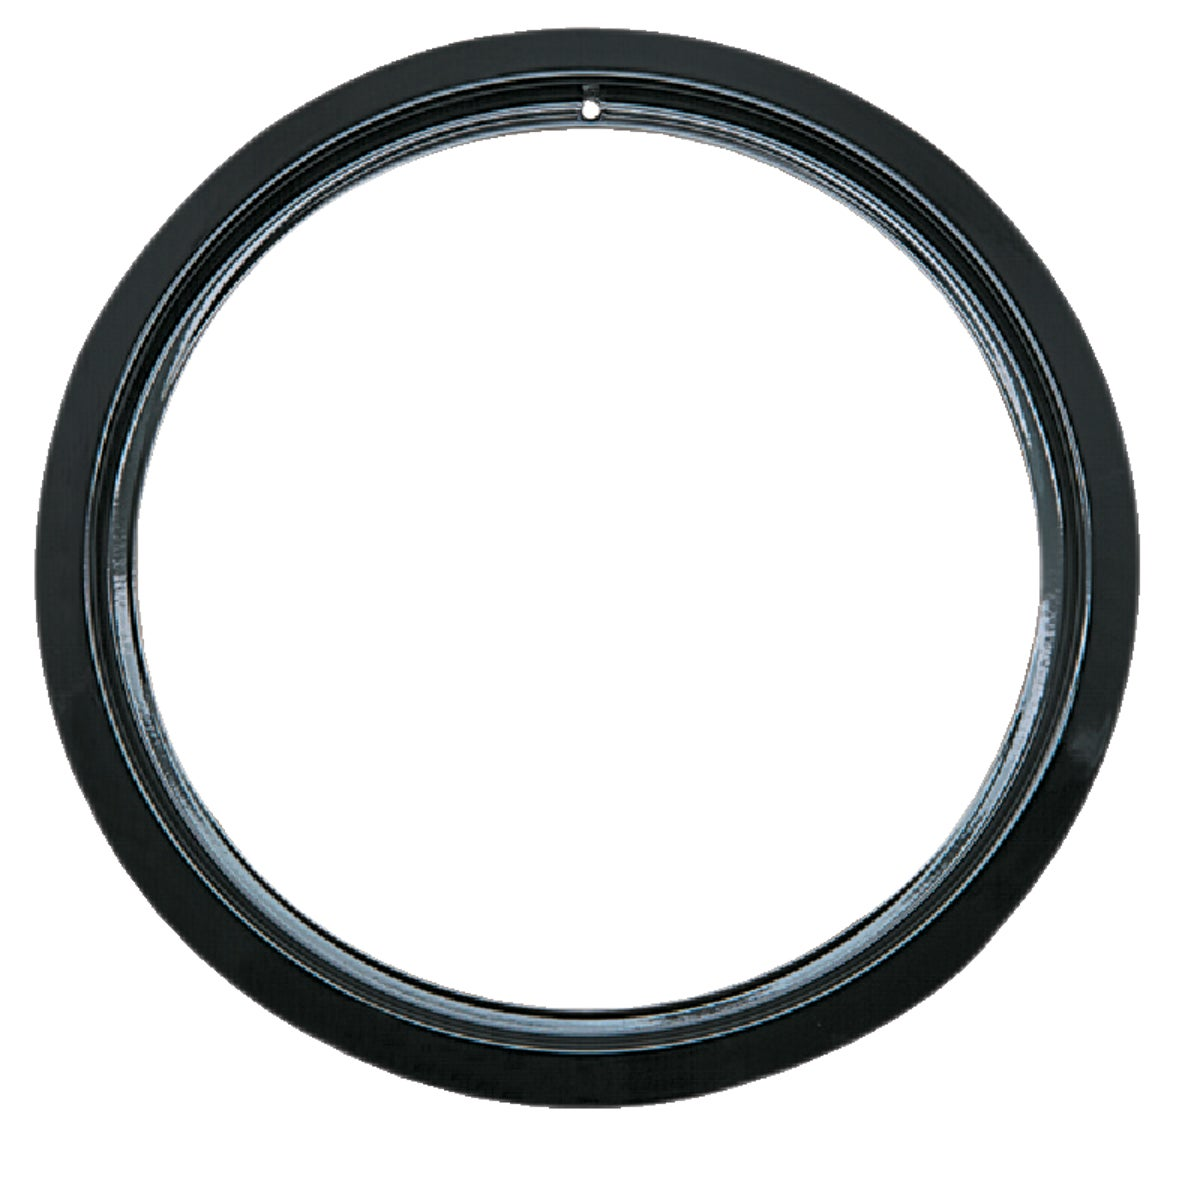 "6"" N/S TRIM RING - P-R6-GE by Range Kleen Mfg Inc"